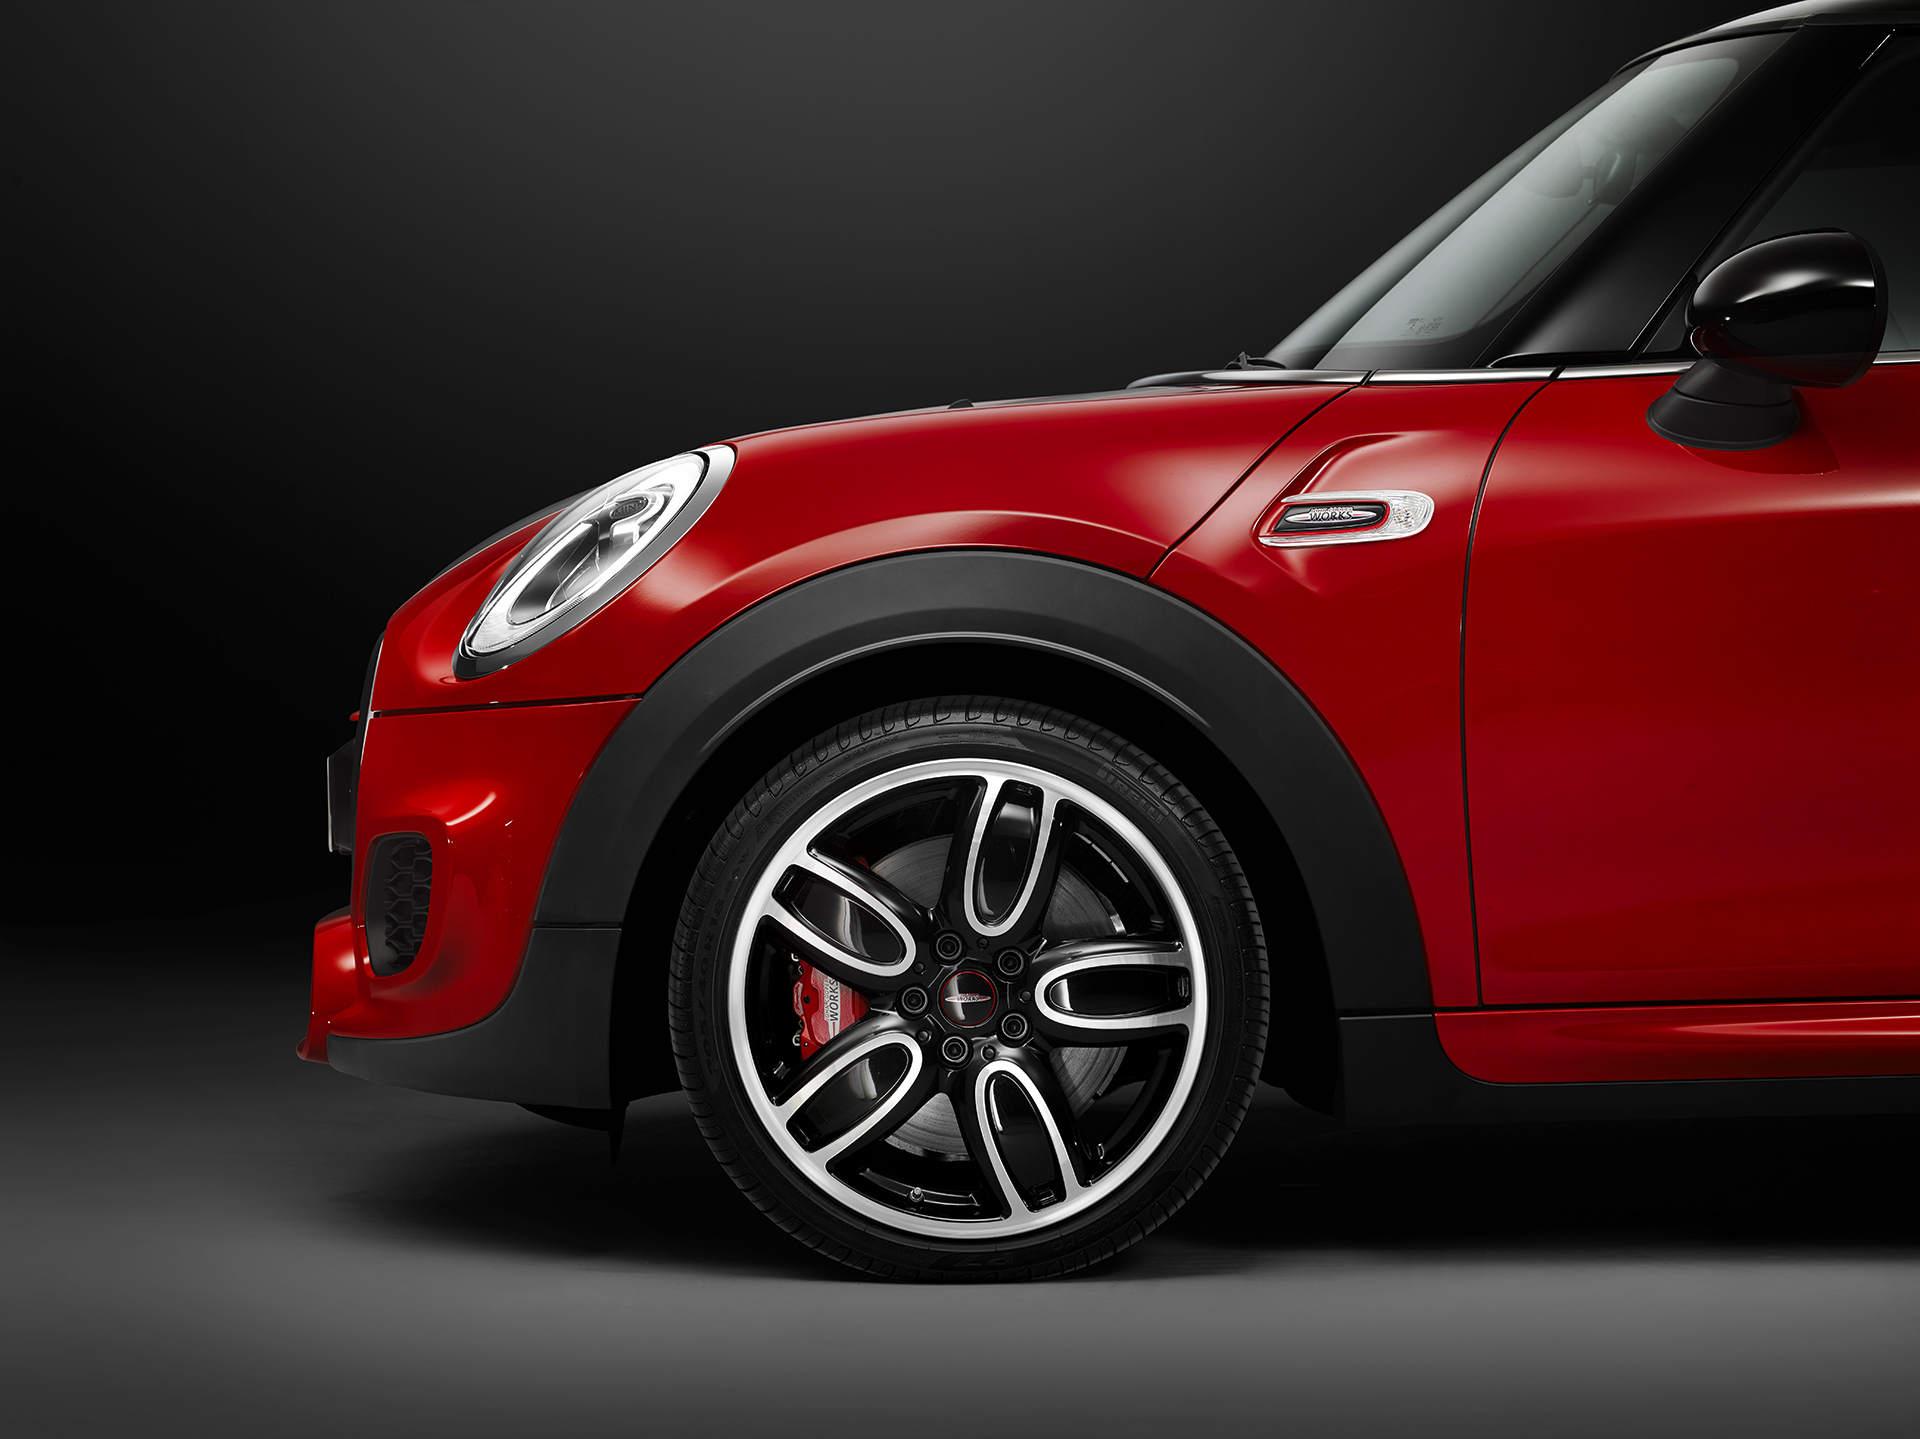 mini john cooper works feat tony hawk le skater pro. Black Bedroom Furniture Sets. Home Design Ideas